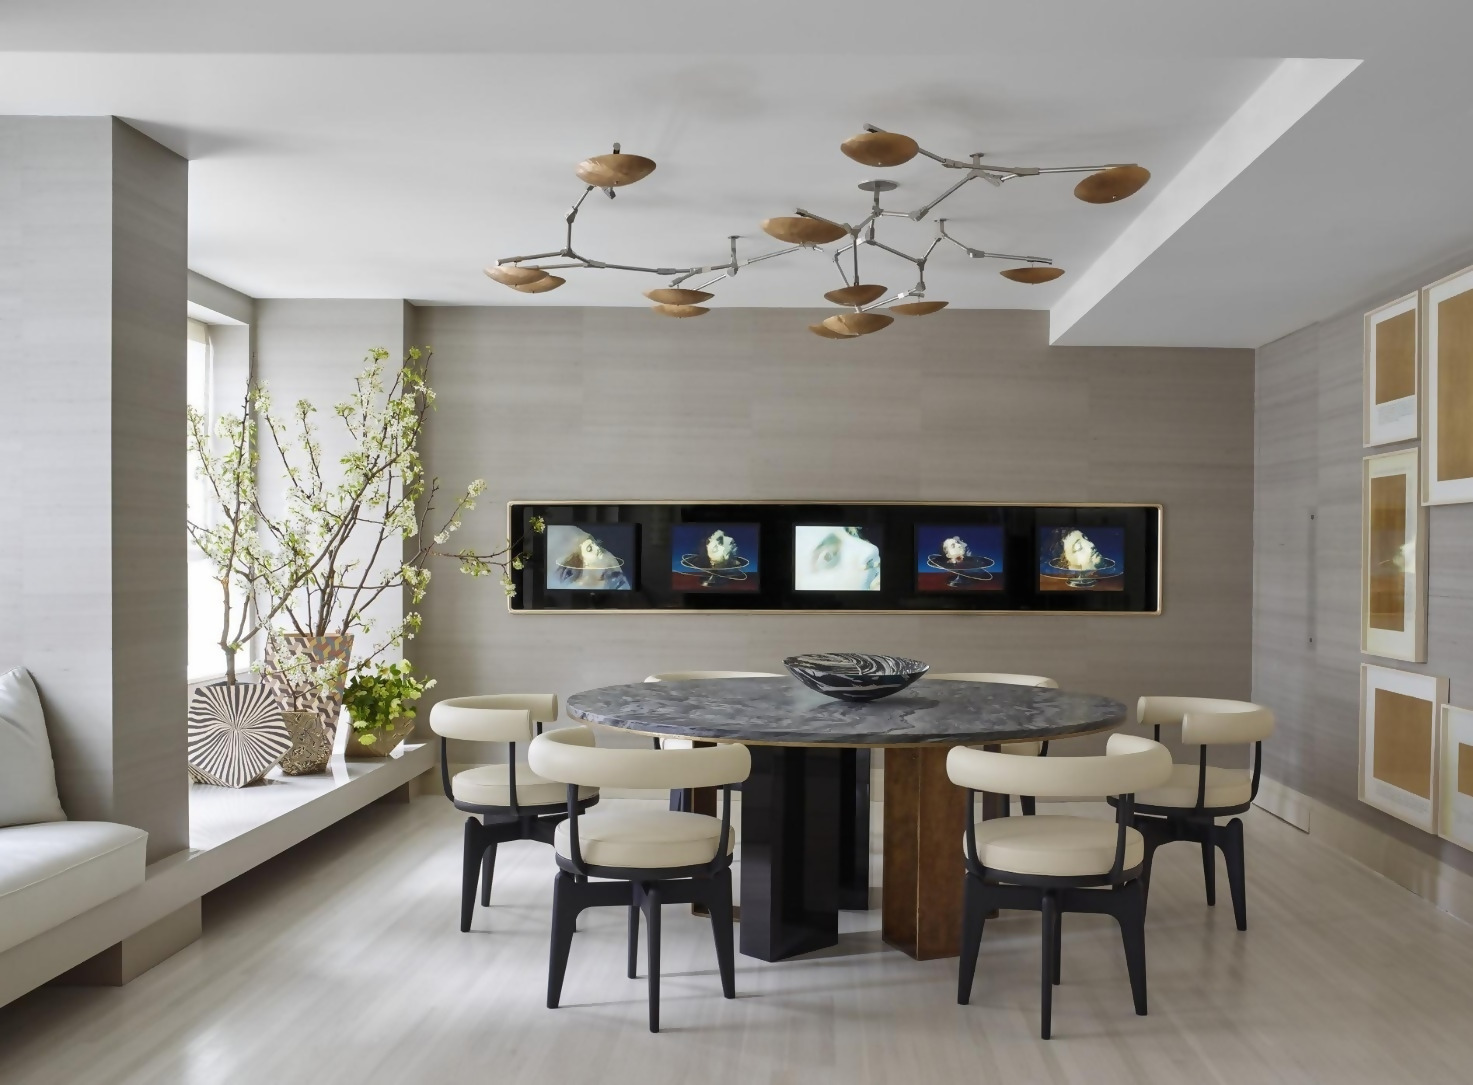 Awesome Dining Room Décor Ideas - Interior Design Explained